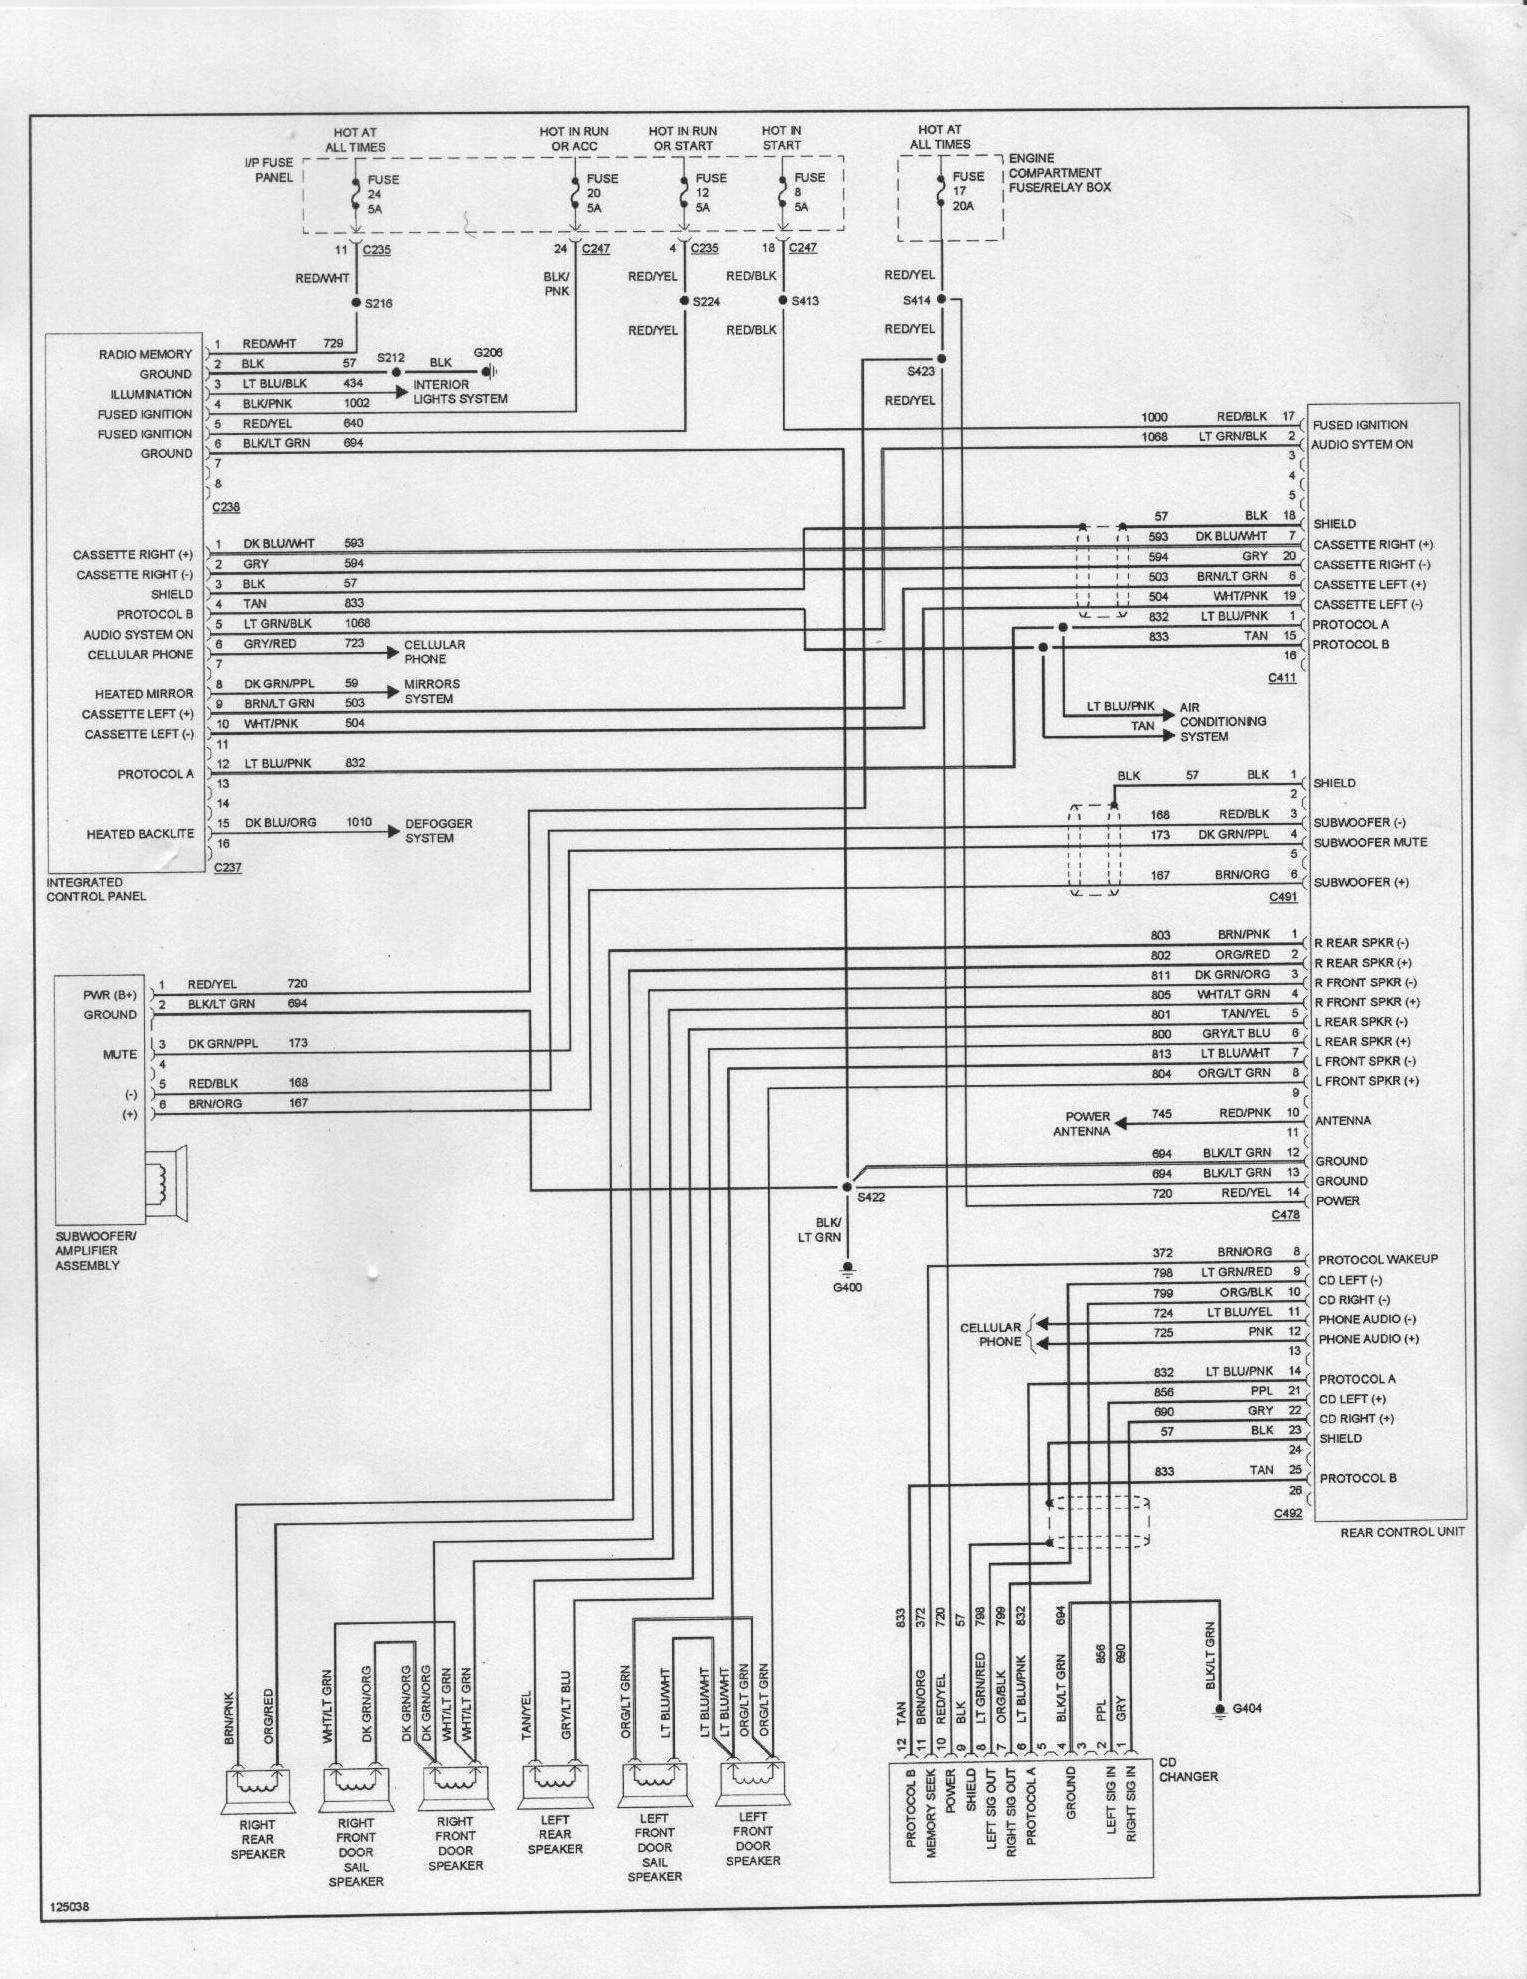 44917d1173064914 wiring diagram ford taurus diagram96 wiring diagram for 2004 ford taurus radio the wiring diagram 1997 ford taurus radio wiring diagram at edmiracle.co